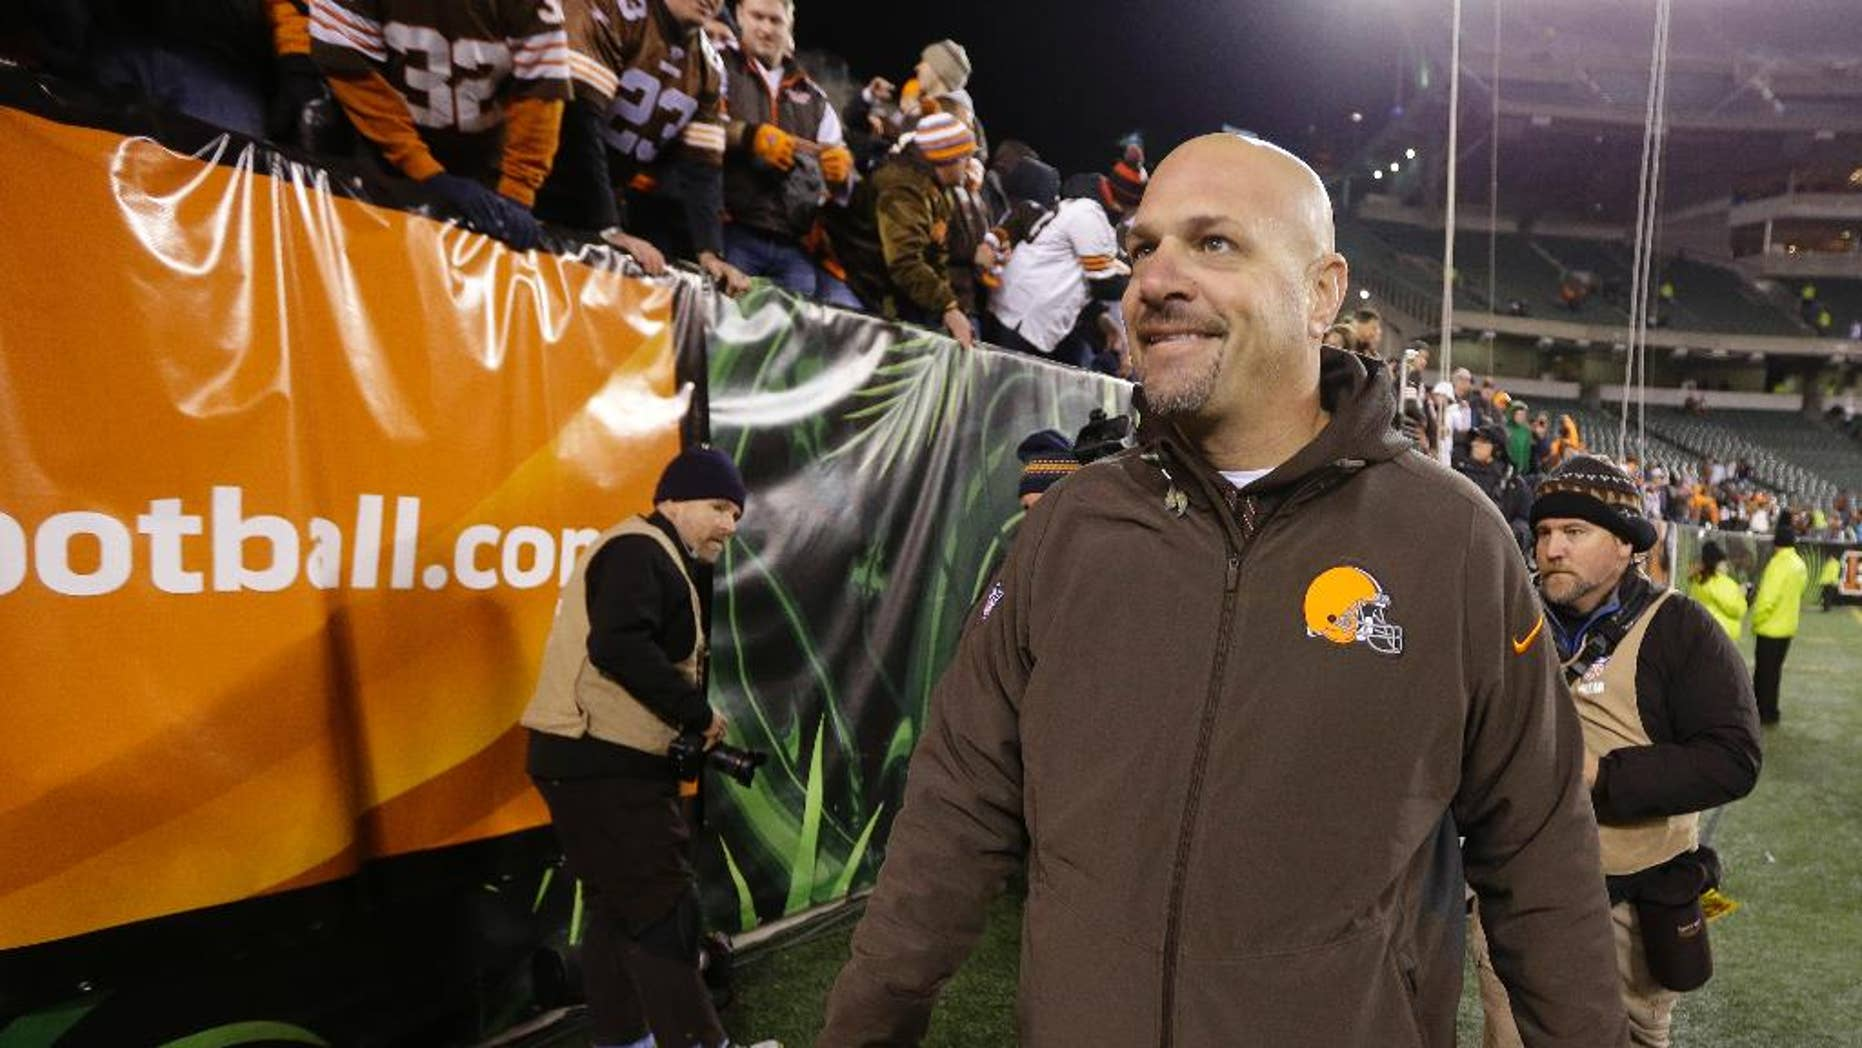 Cleveland Browns coach Mike Pettine smiles as he leave the field following the Browns' 24-3 in an NFL football game against the Cincinnati Bengals on Thursday, Nov. 6, 2014, in Cincinnati. (AP Photo/Michael Conroy)